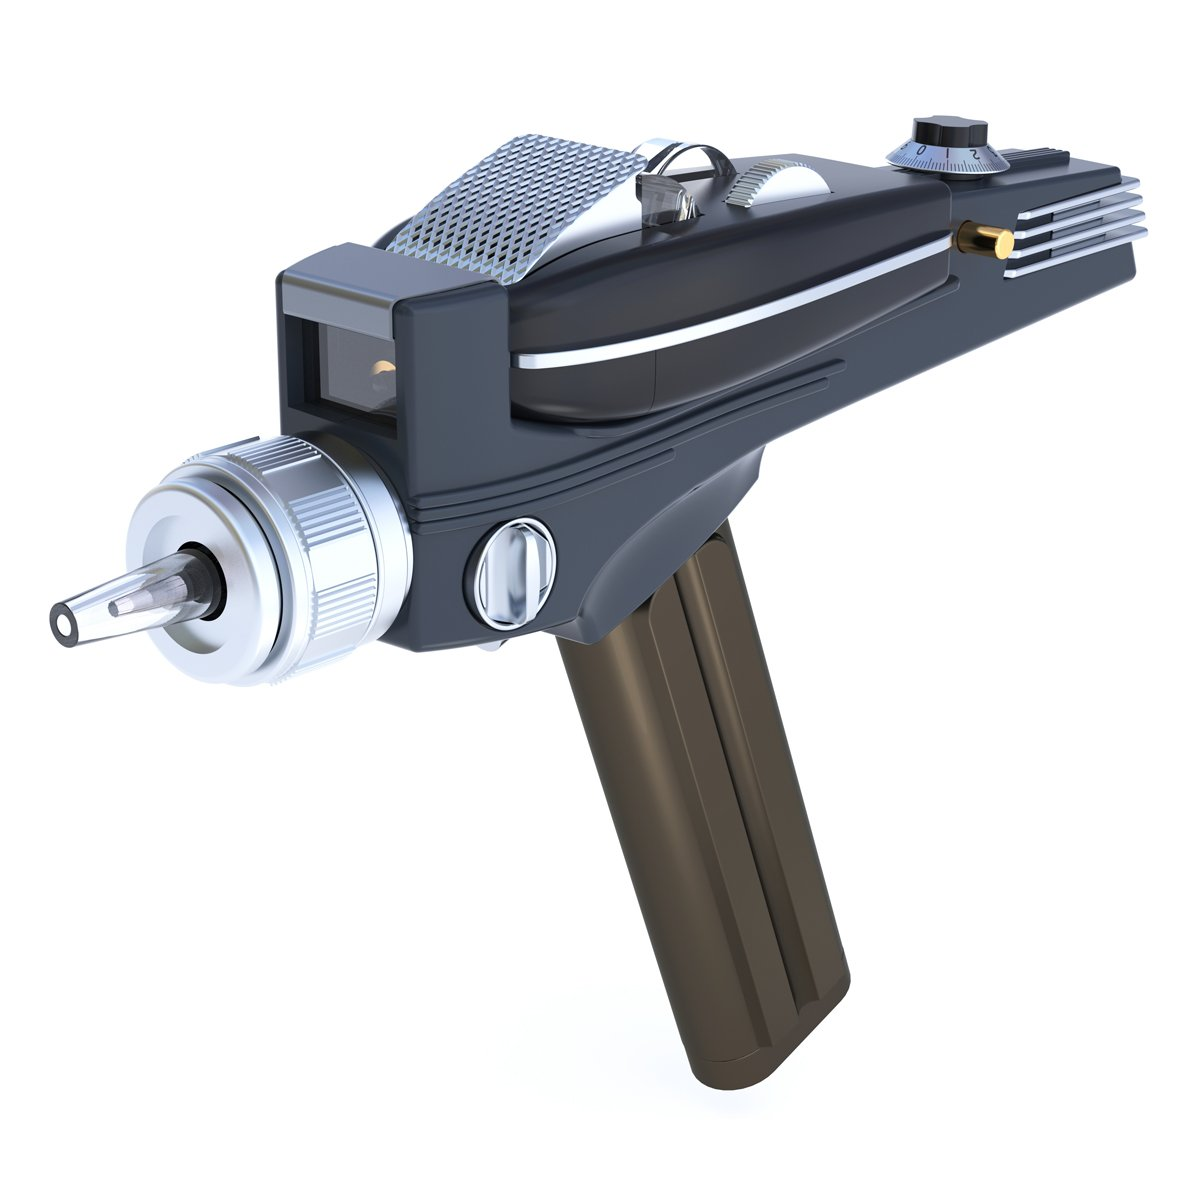 Star Trek Phaser Remote Control Replica Universal TV Remote Prop From The Original Series by The Wand Company Limited